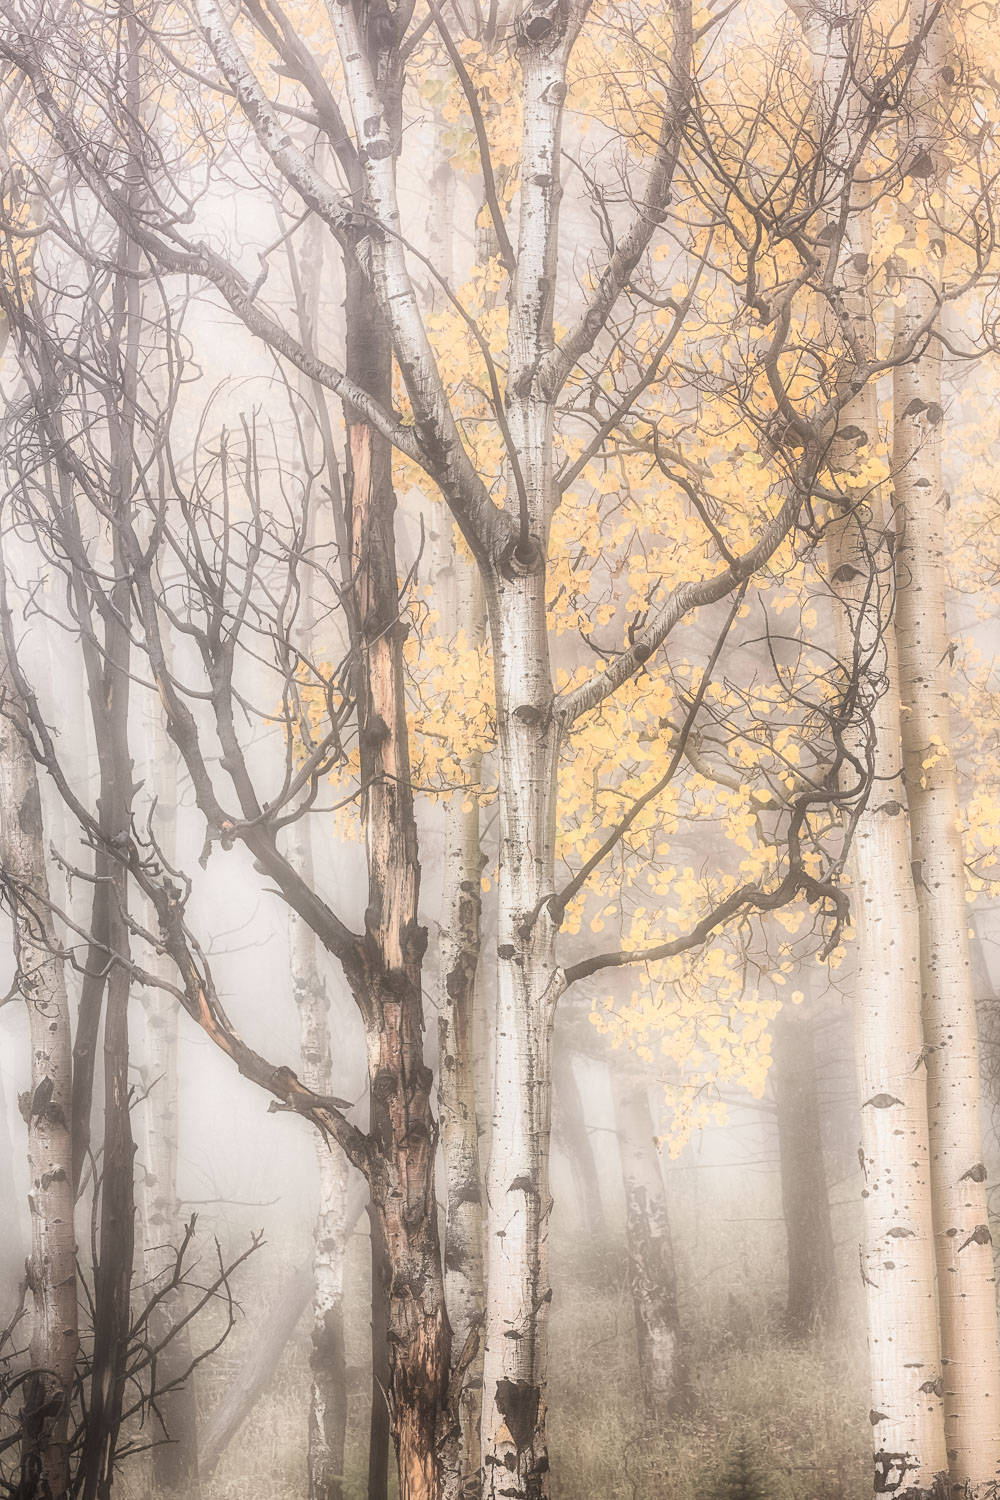 Misty Trees of Mammoth, Yellowstone National Park, Wyoming